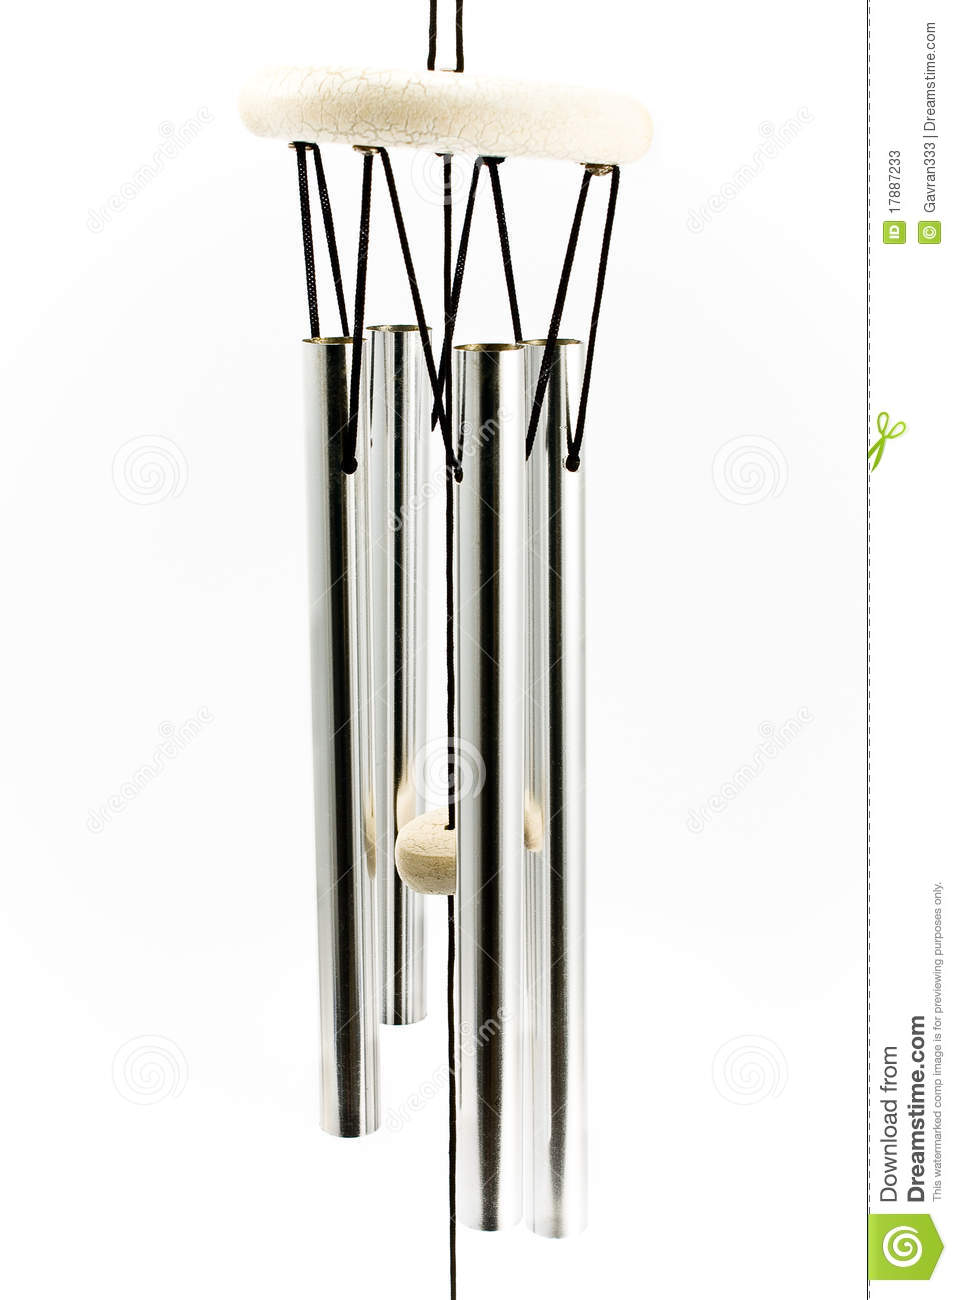 Wind Chimes Stock Photos.